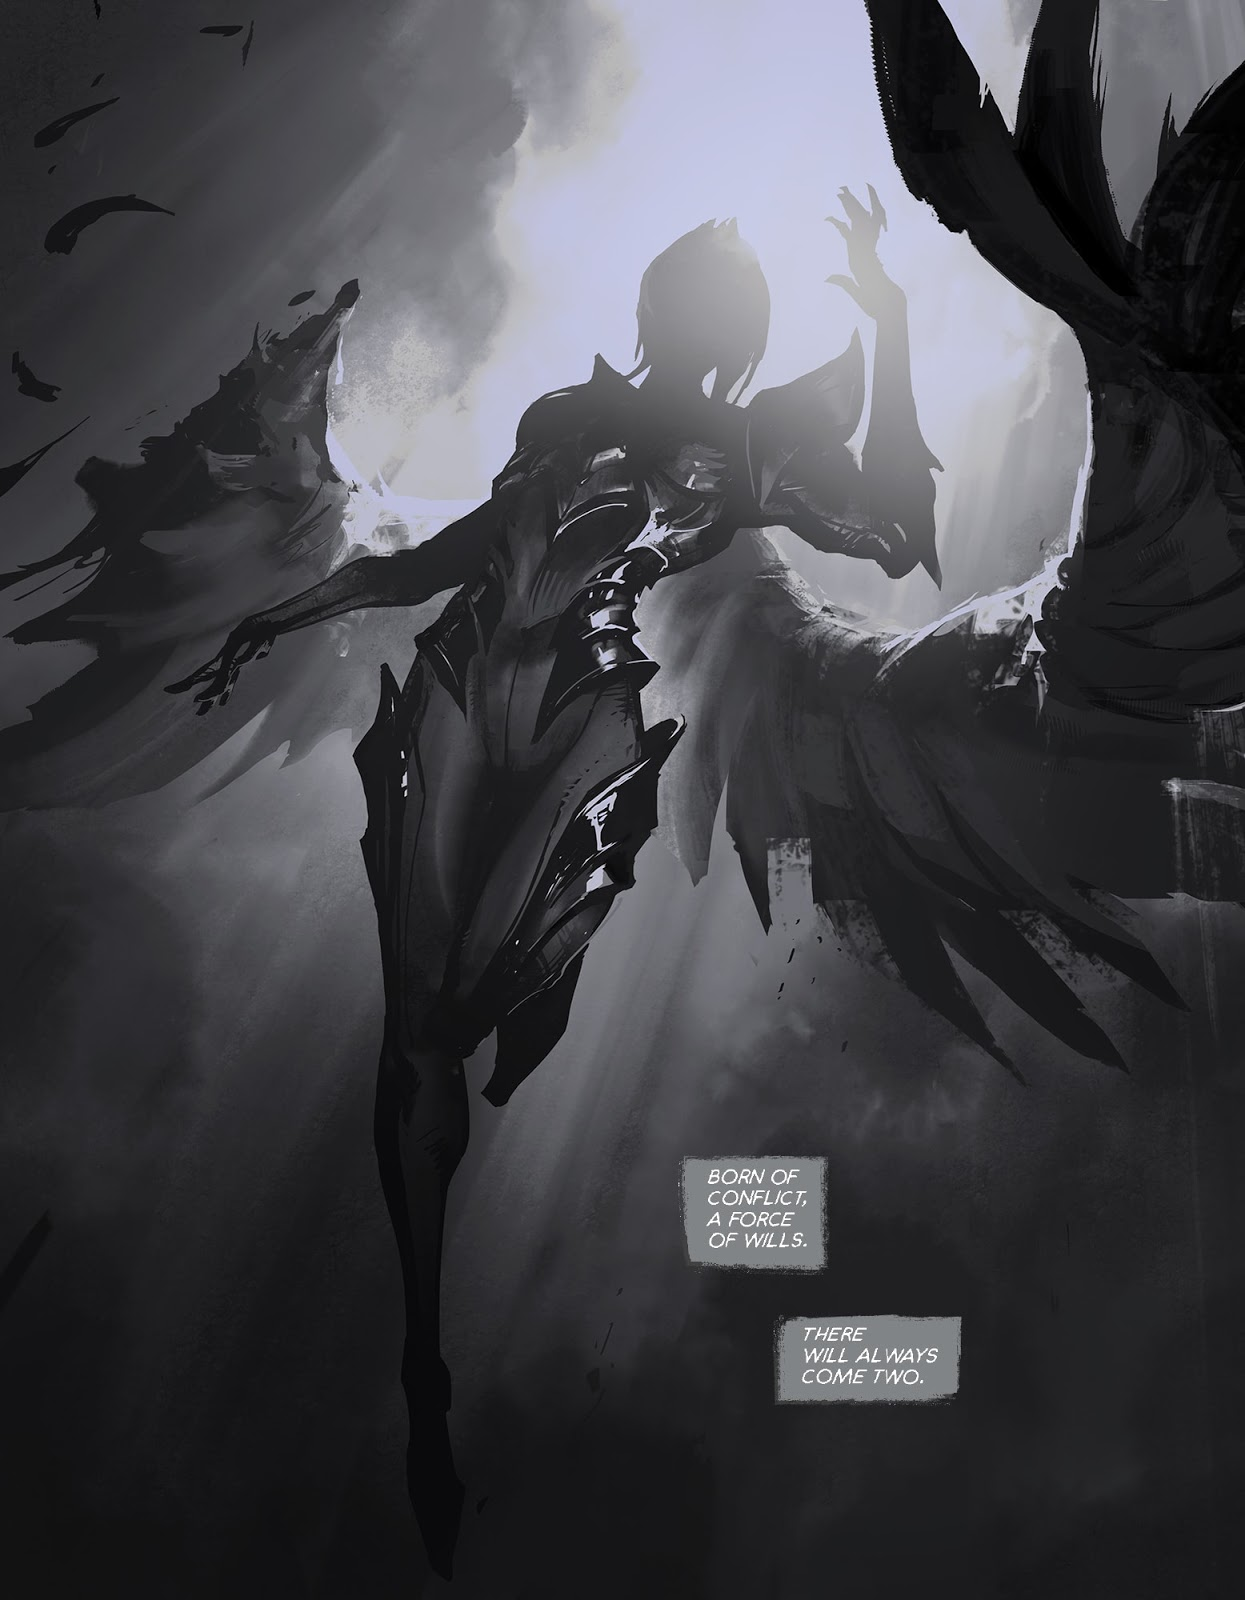 Enjoy Your Reign Chaos Followers And To My Fellow Riven Supporters We Know How The World Truly Should Have Been Reborn Heres The Alternate Ending We